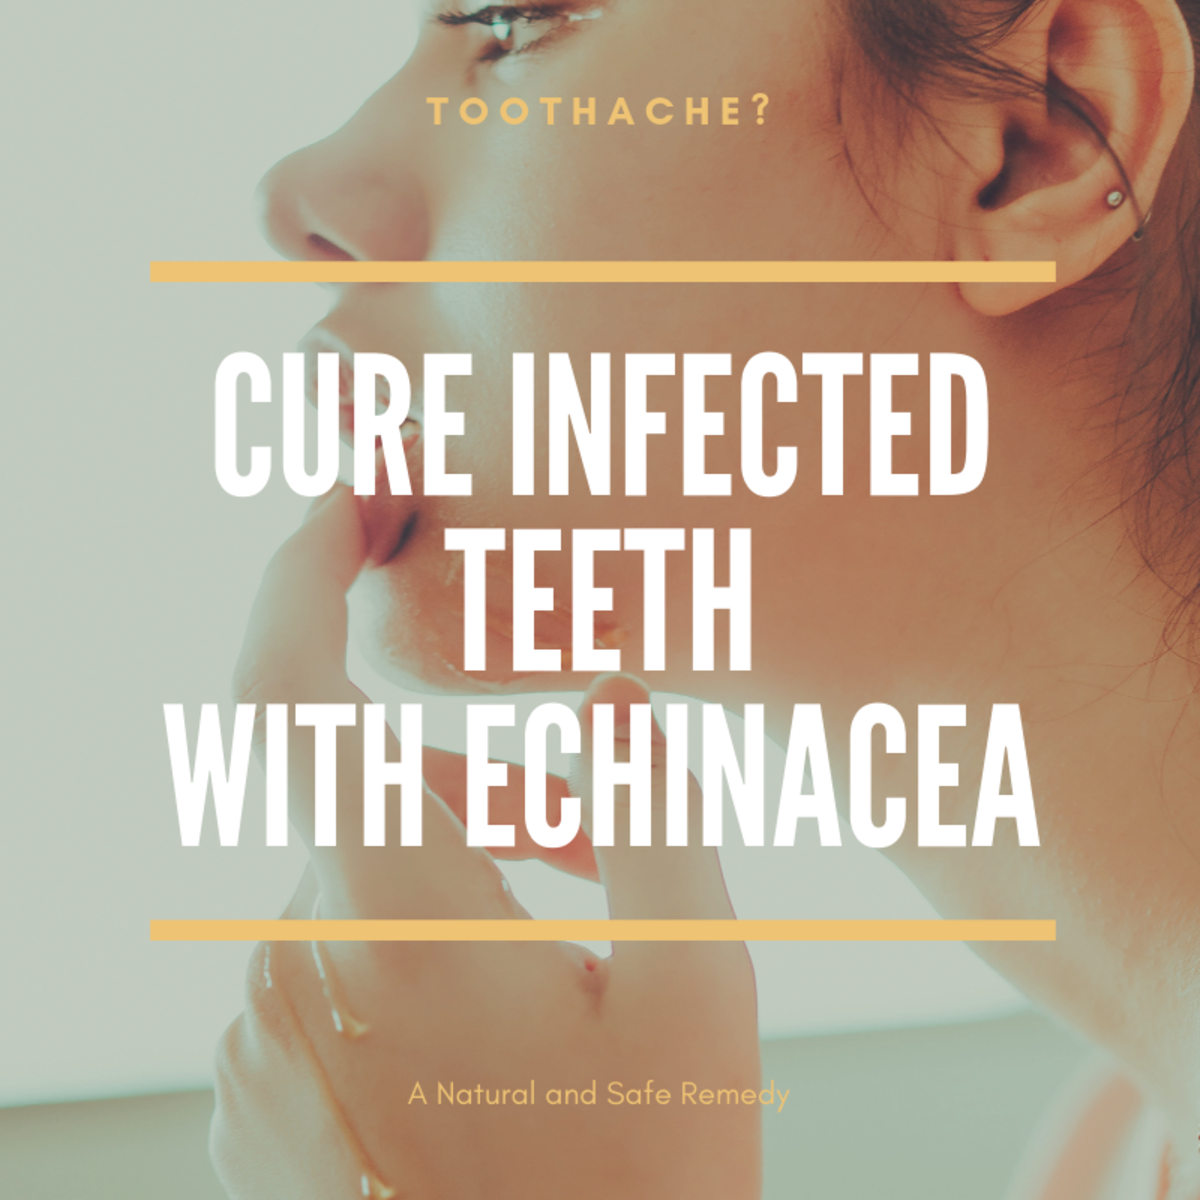 How to Cure a Toothache With Echinacea